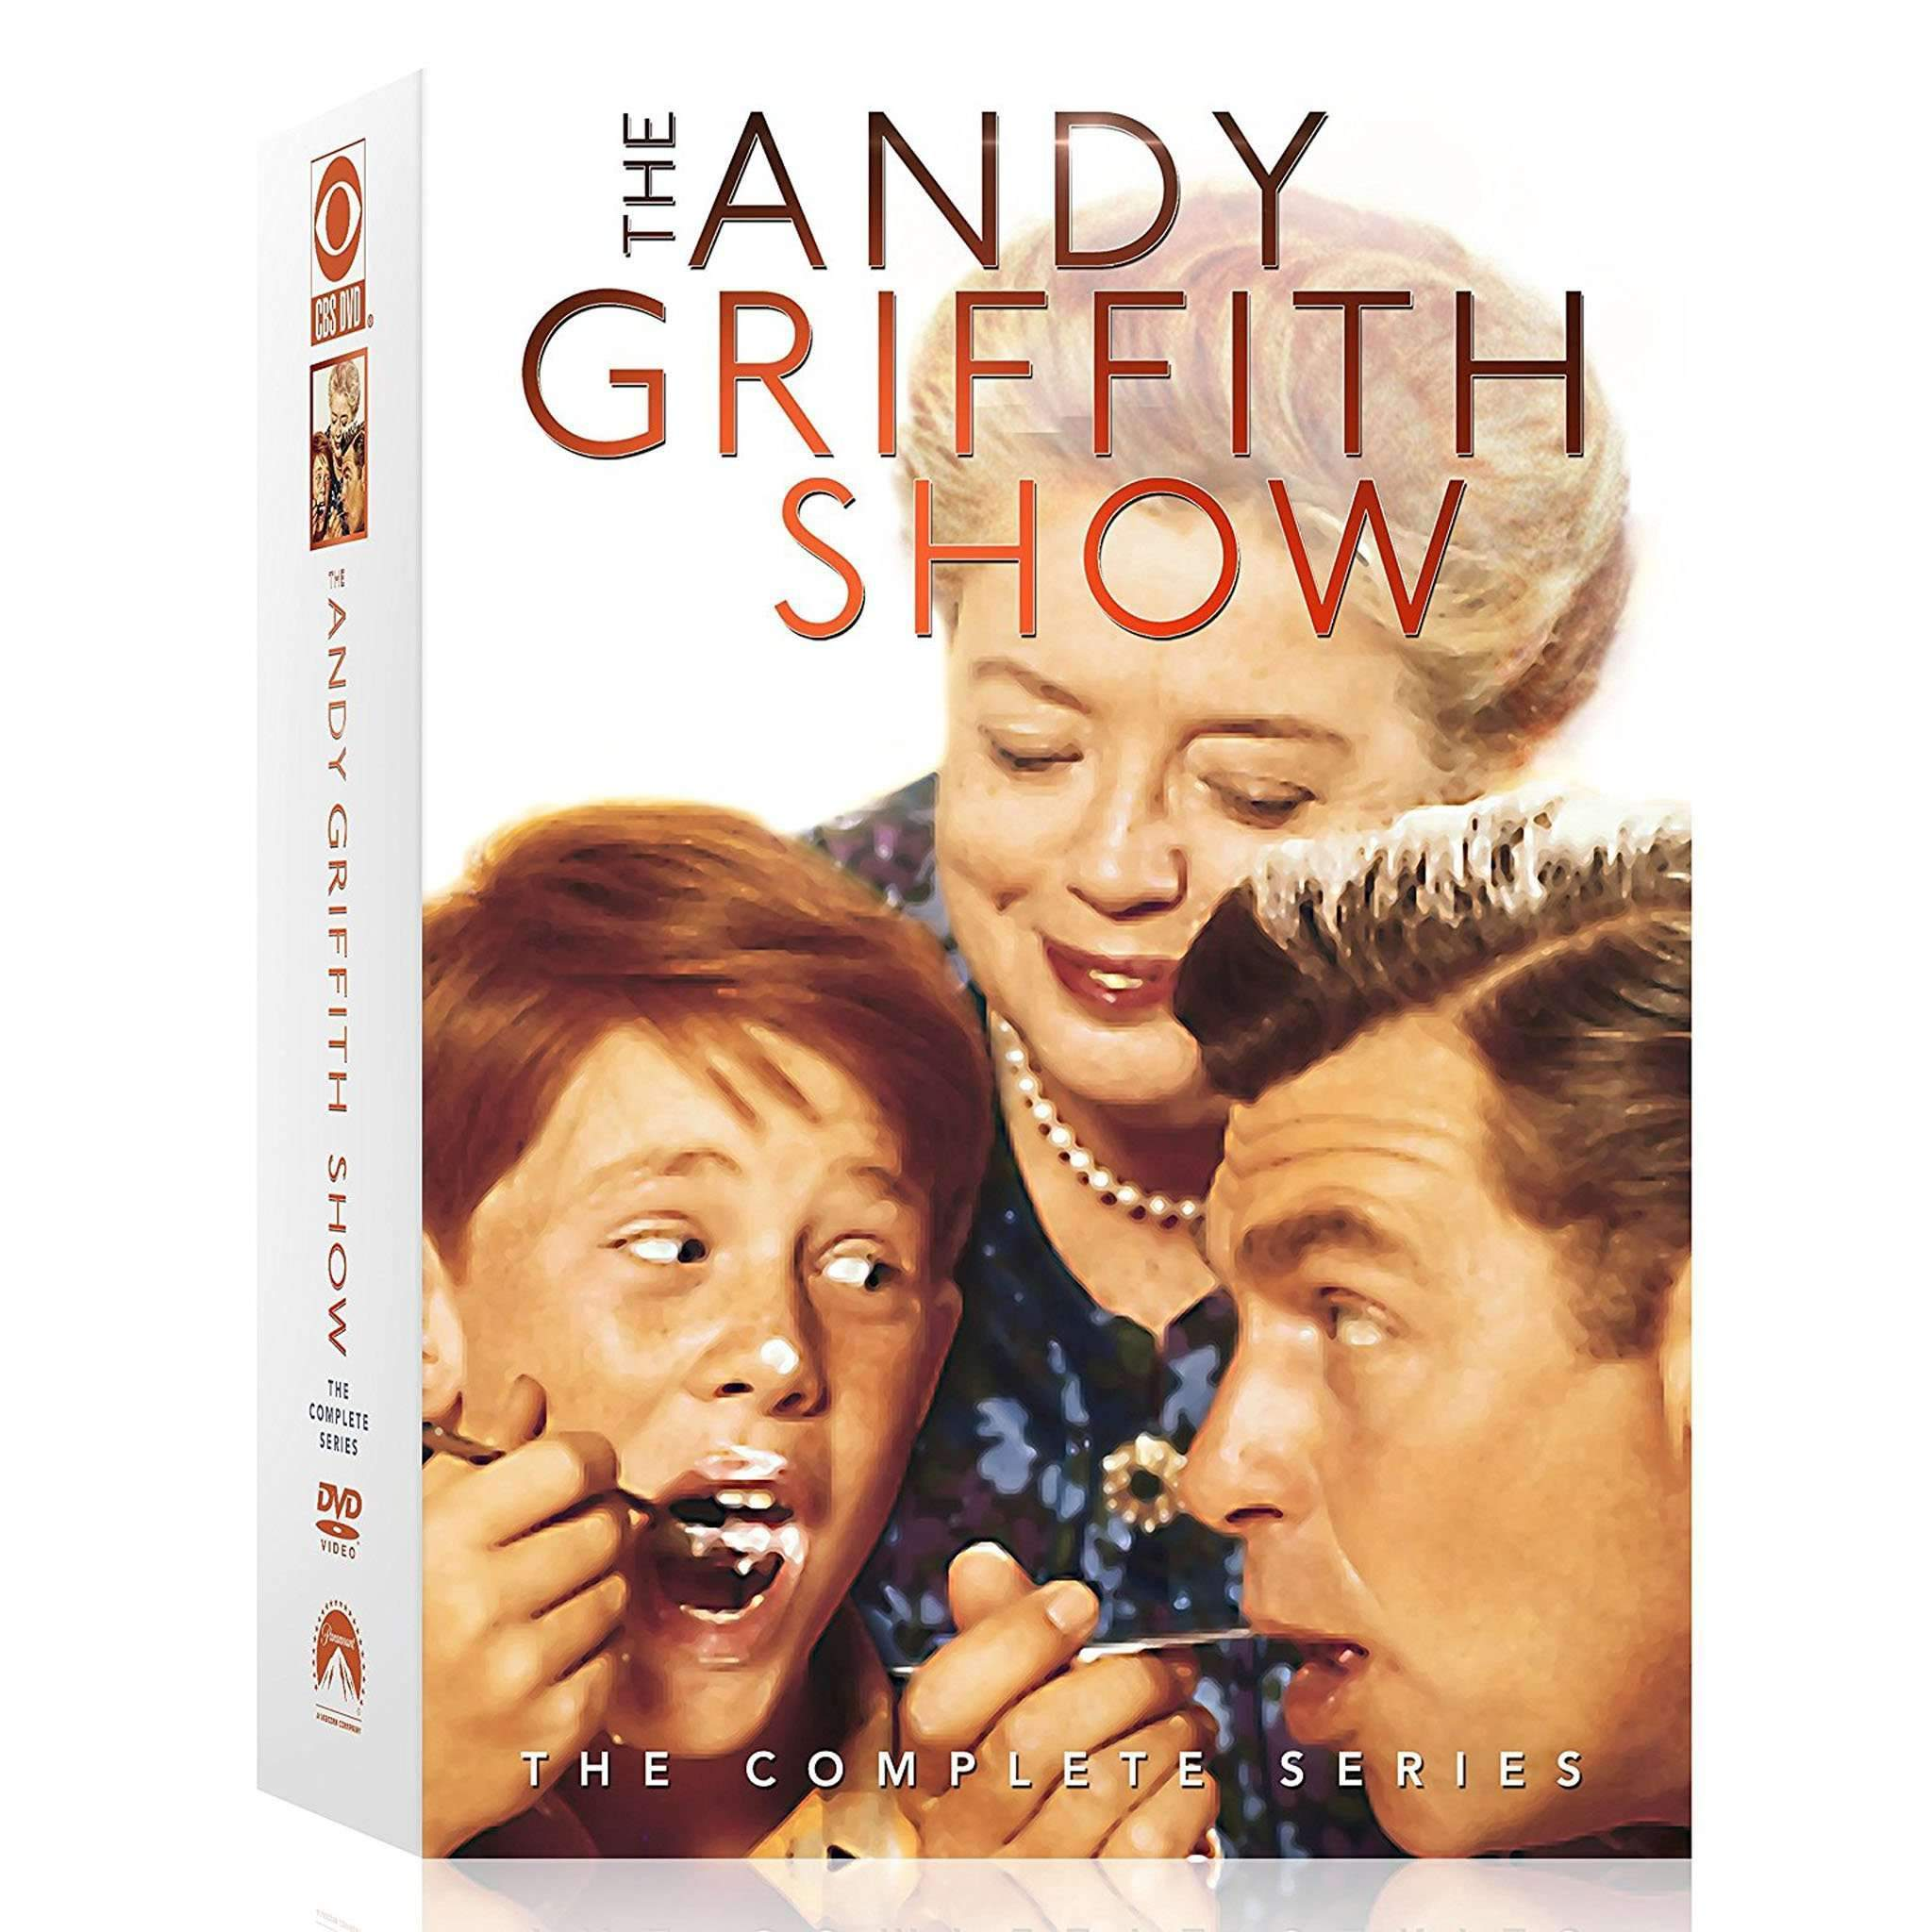 The Andy Griffith Show DVD Complete Series Box Set CBS DVDs & Blu-ray Discs > DVDs > Box Sets